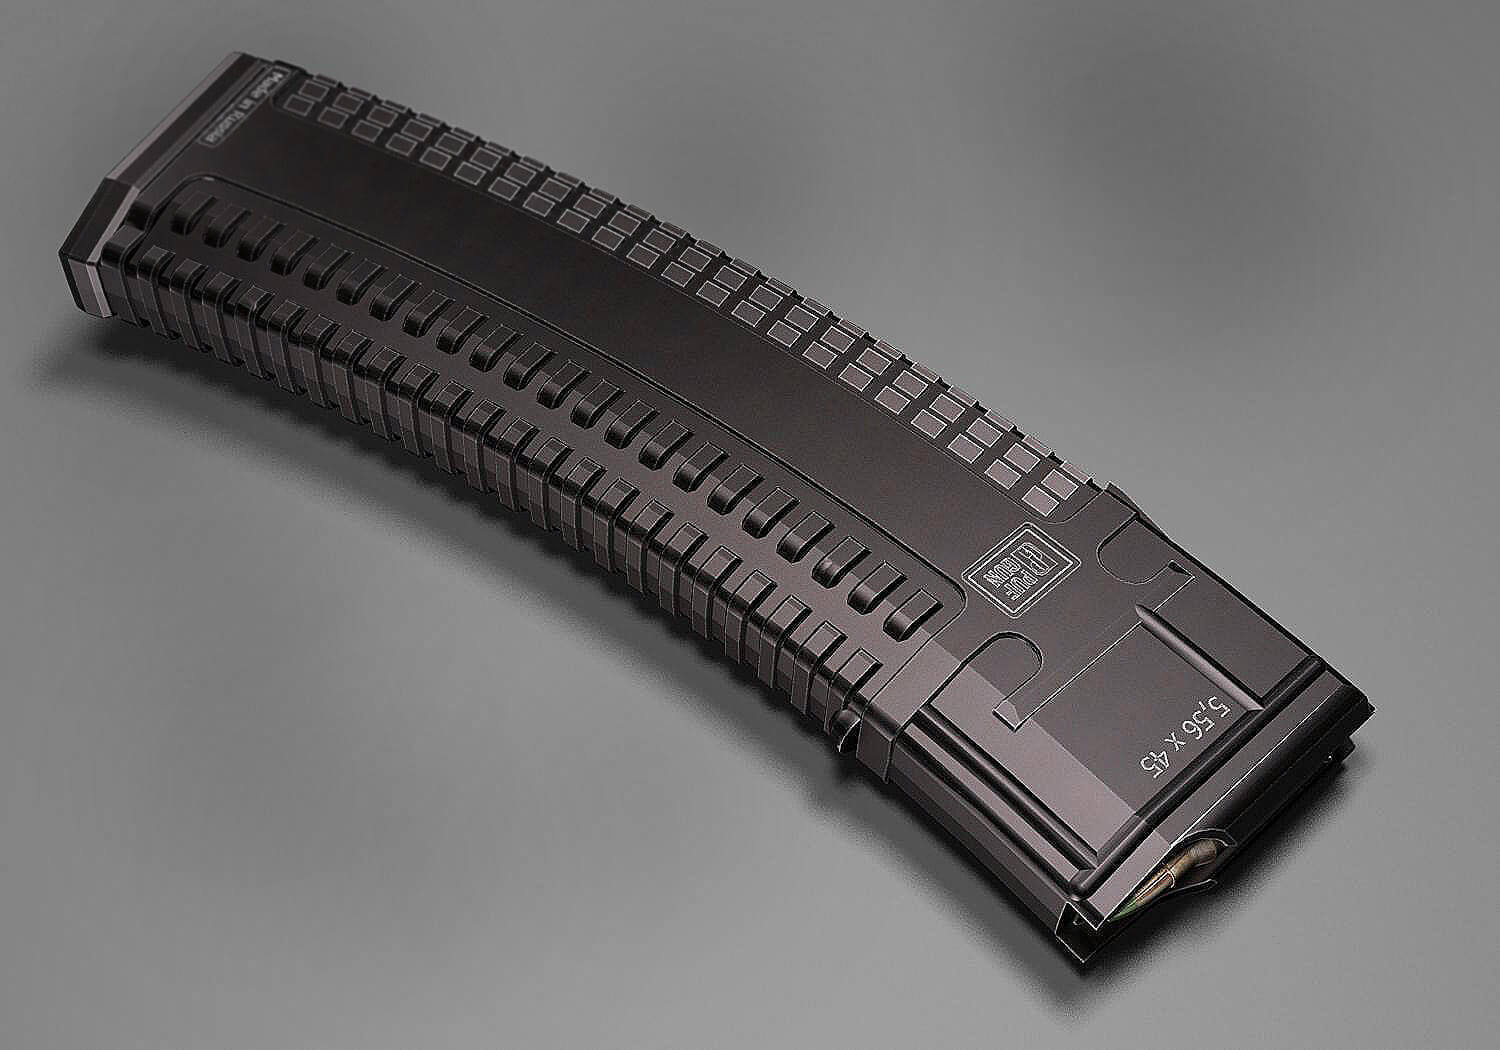 Magazine AUG 5.56*45 for 45 cartridges